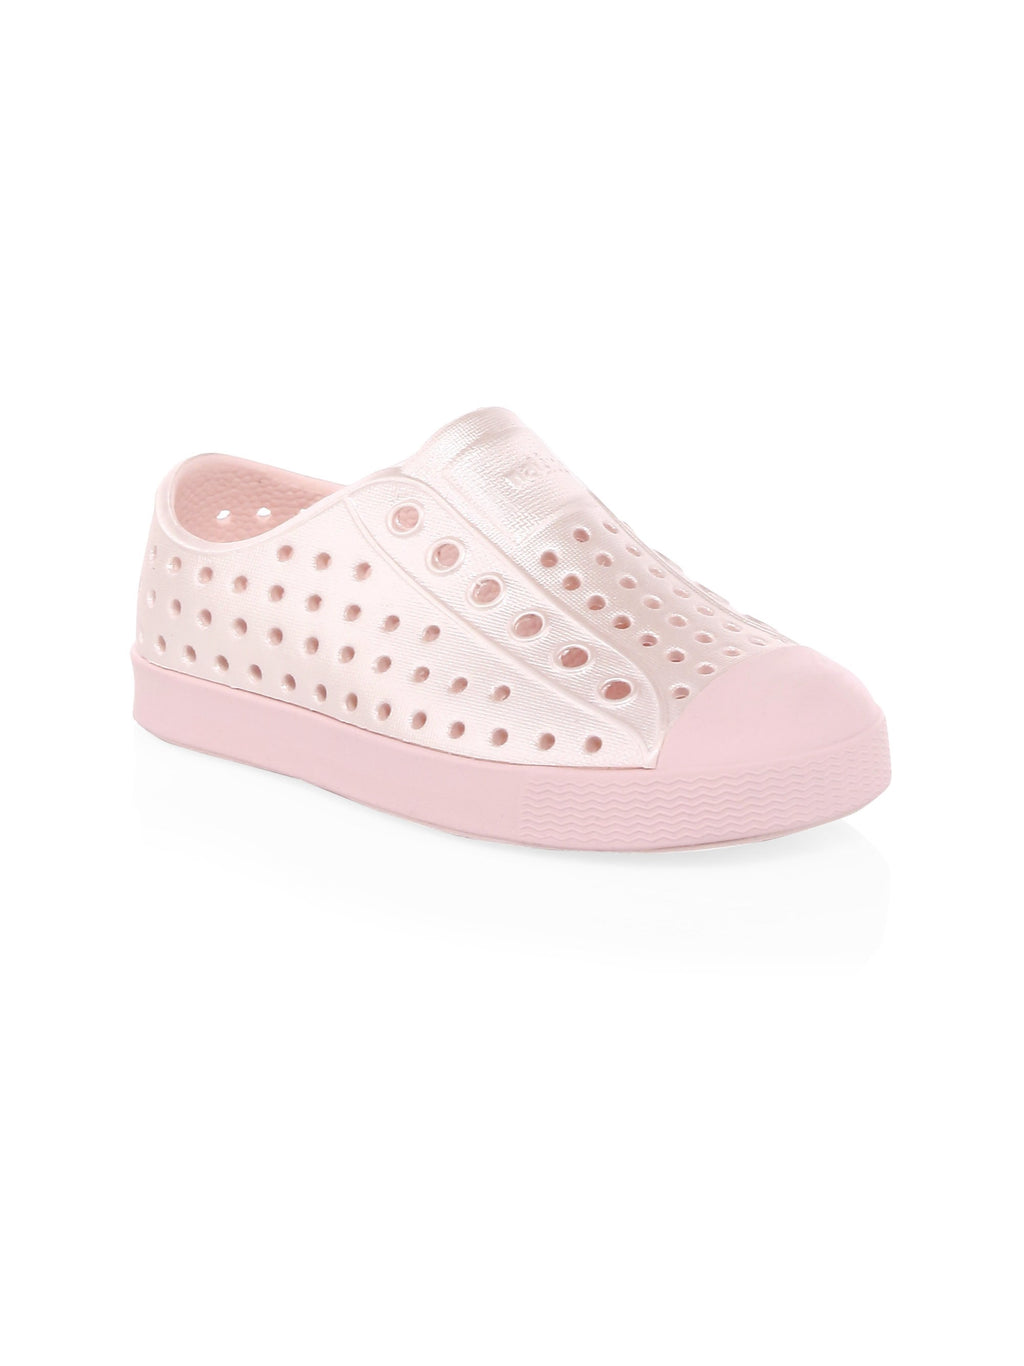 Native Shoes Metallic Pink Children's Jefferson Shoe